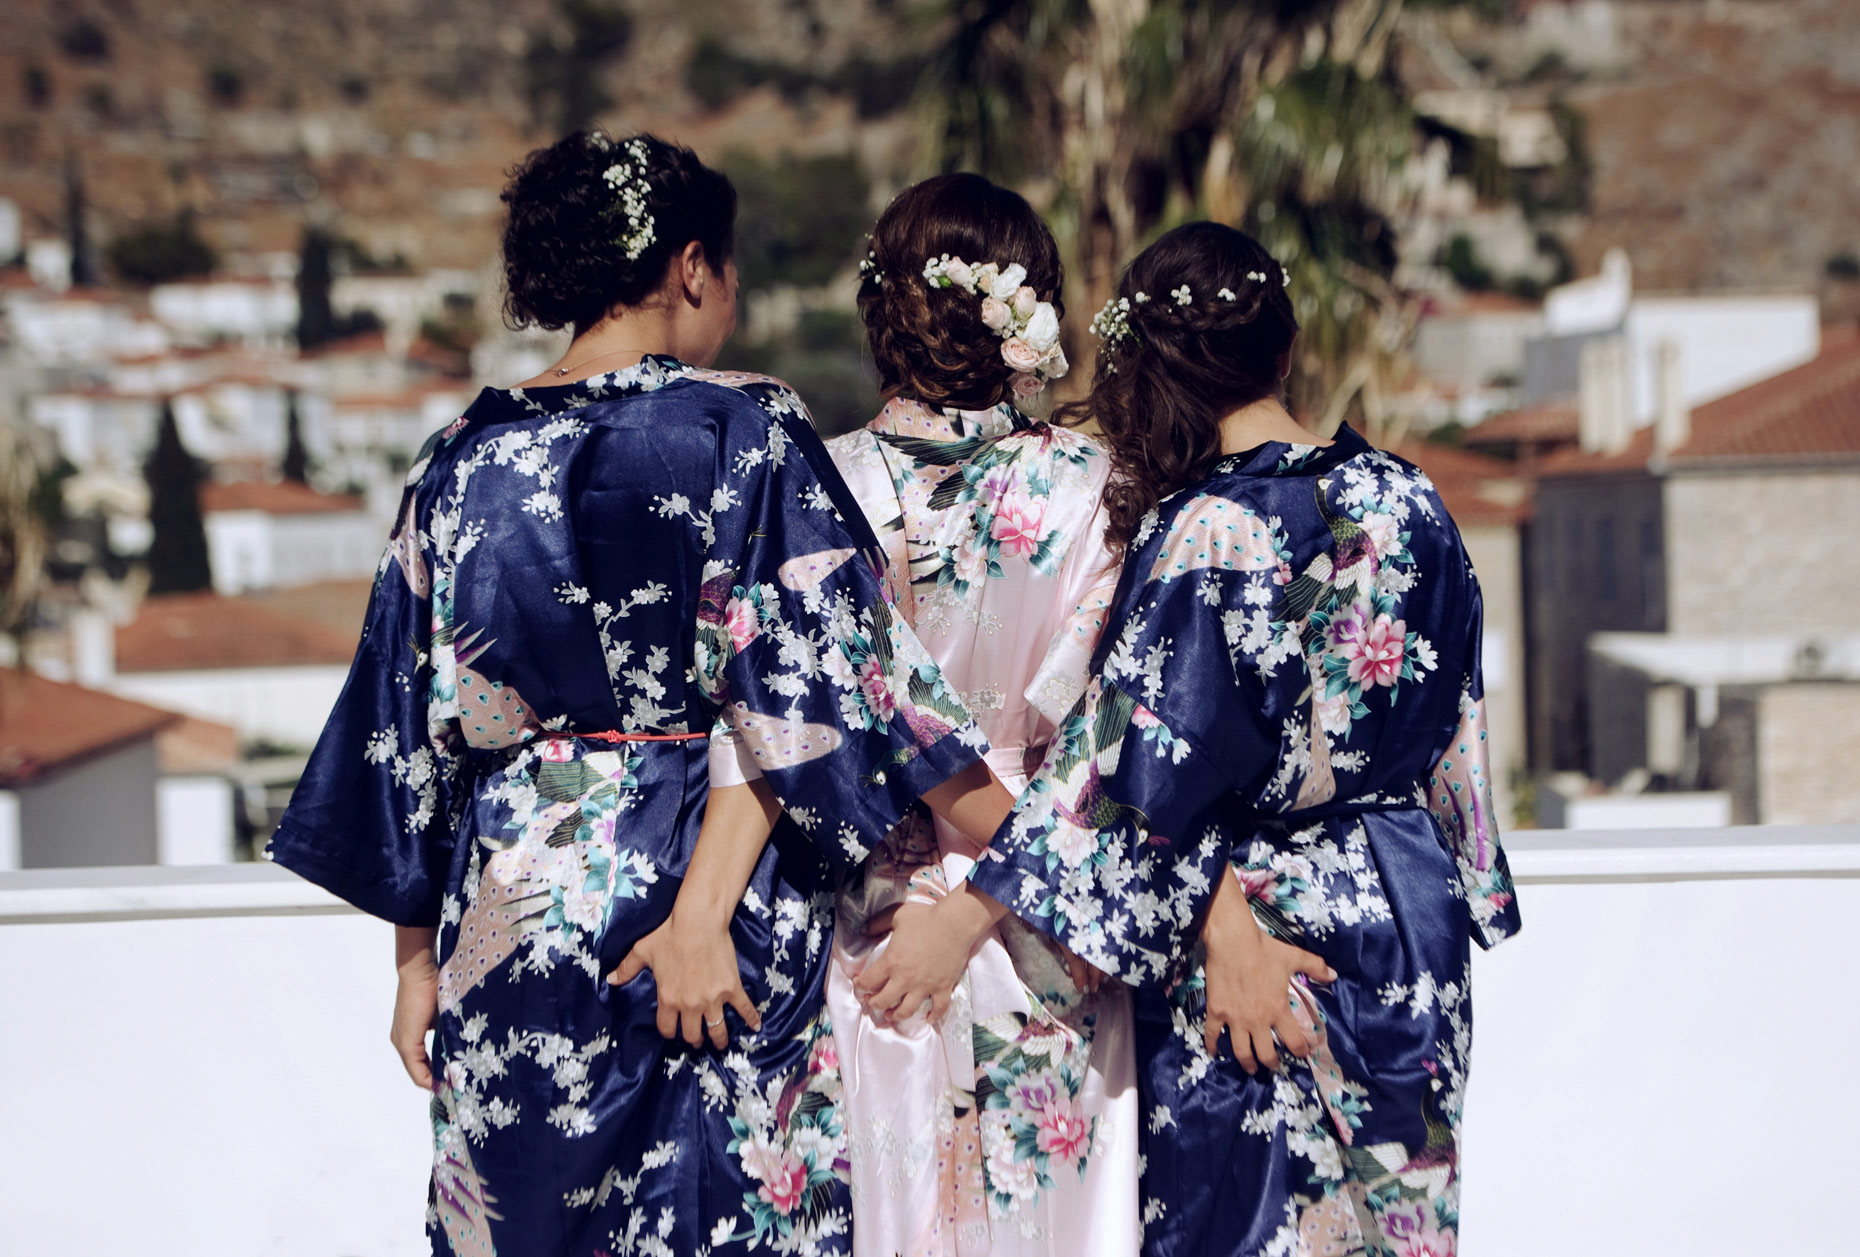 hydra_wedding_66